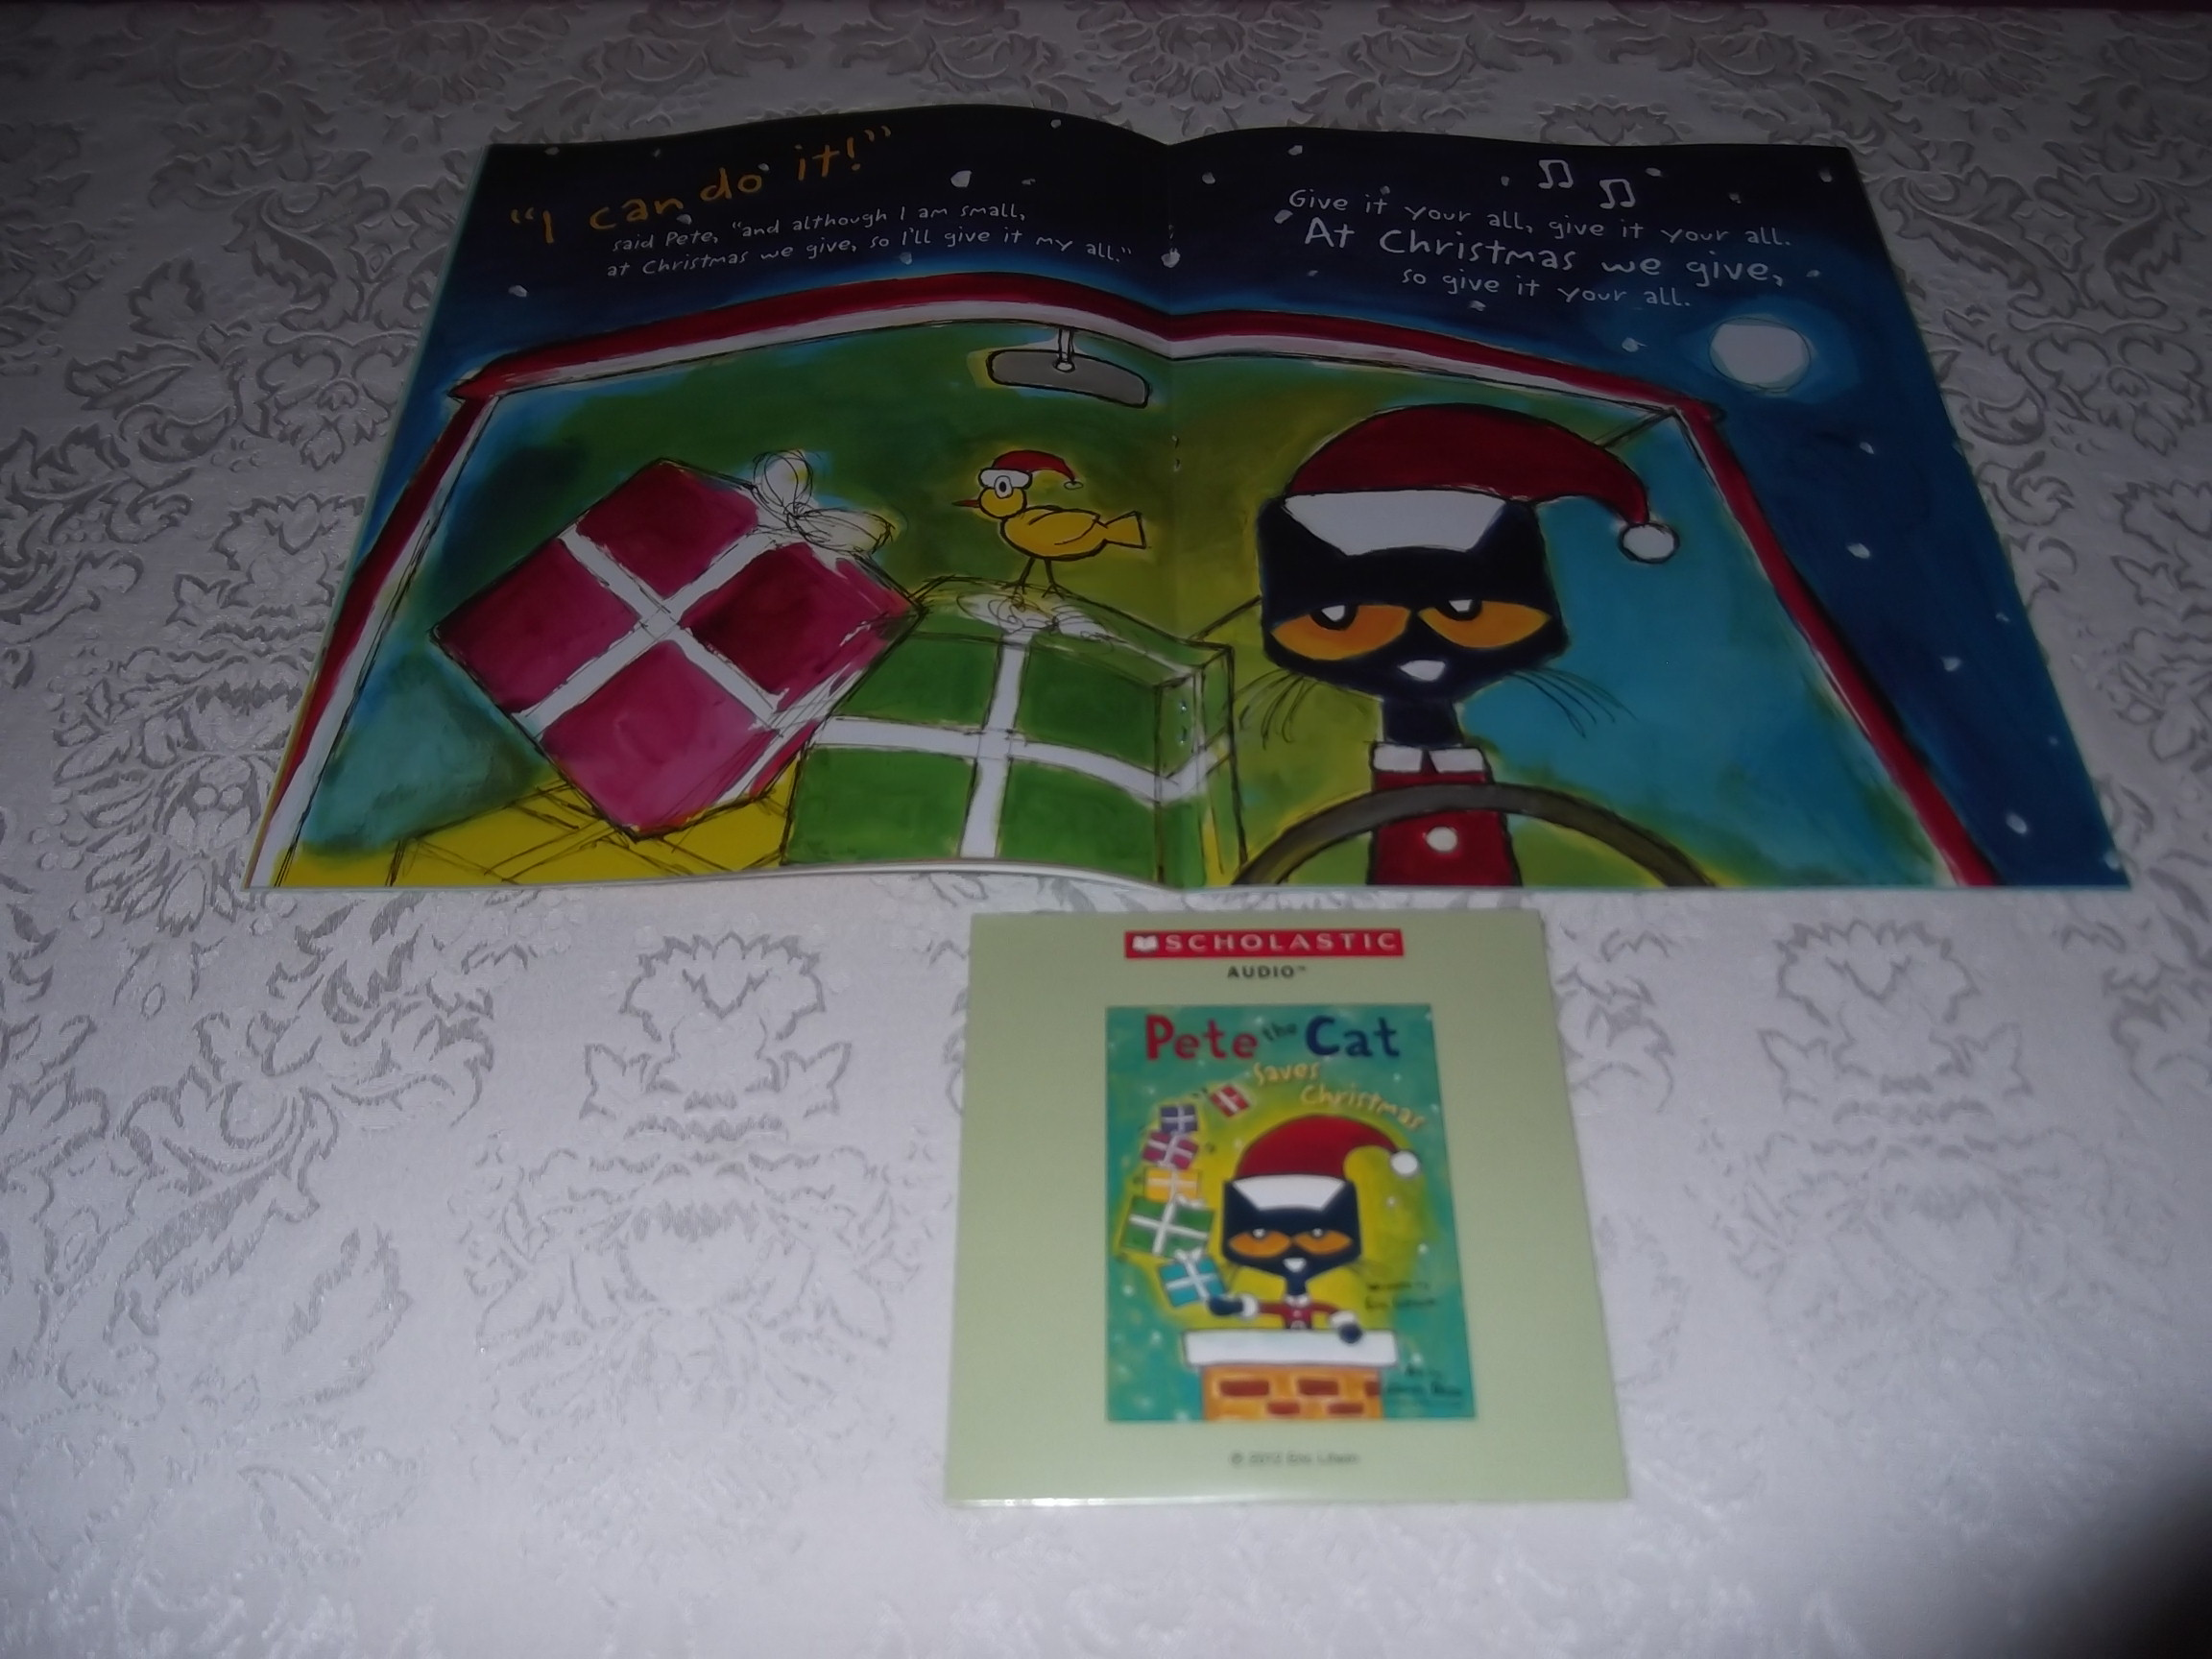 Image 2 of Pete the Cat Saves Christmas Brand New Audio CD and SC Eric Litwin